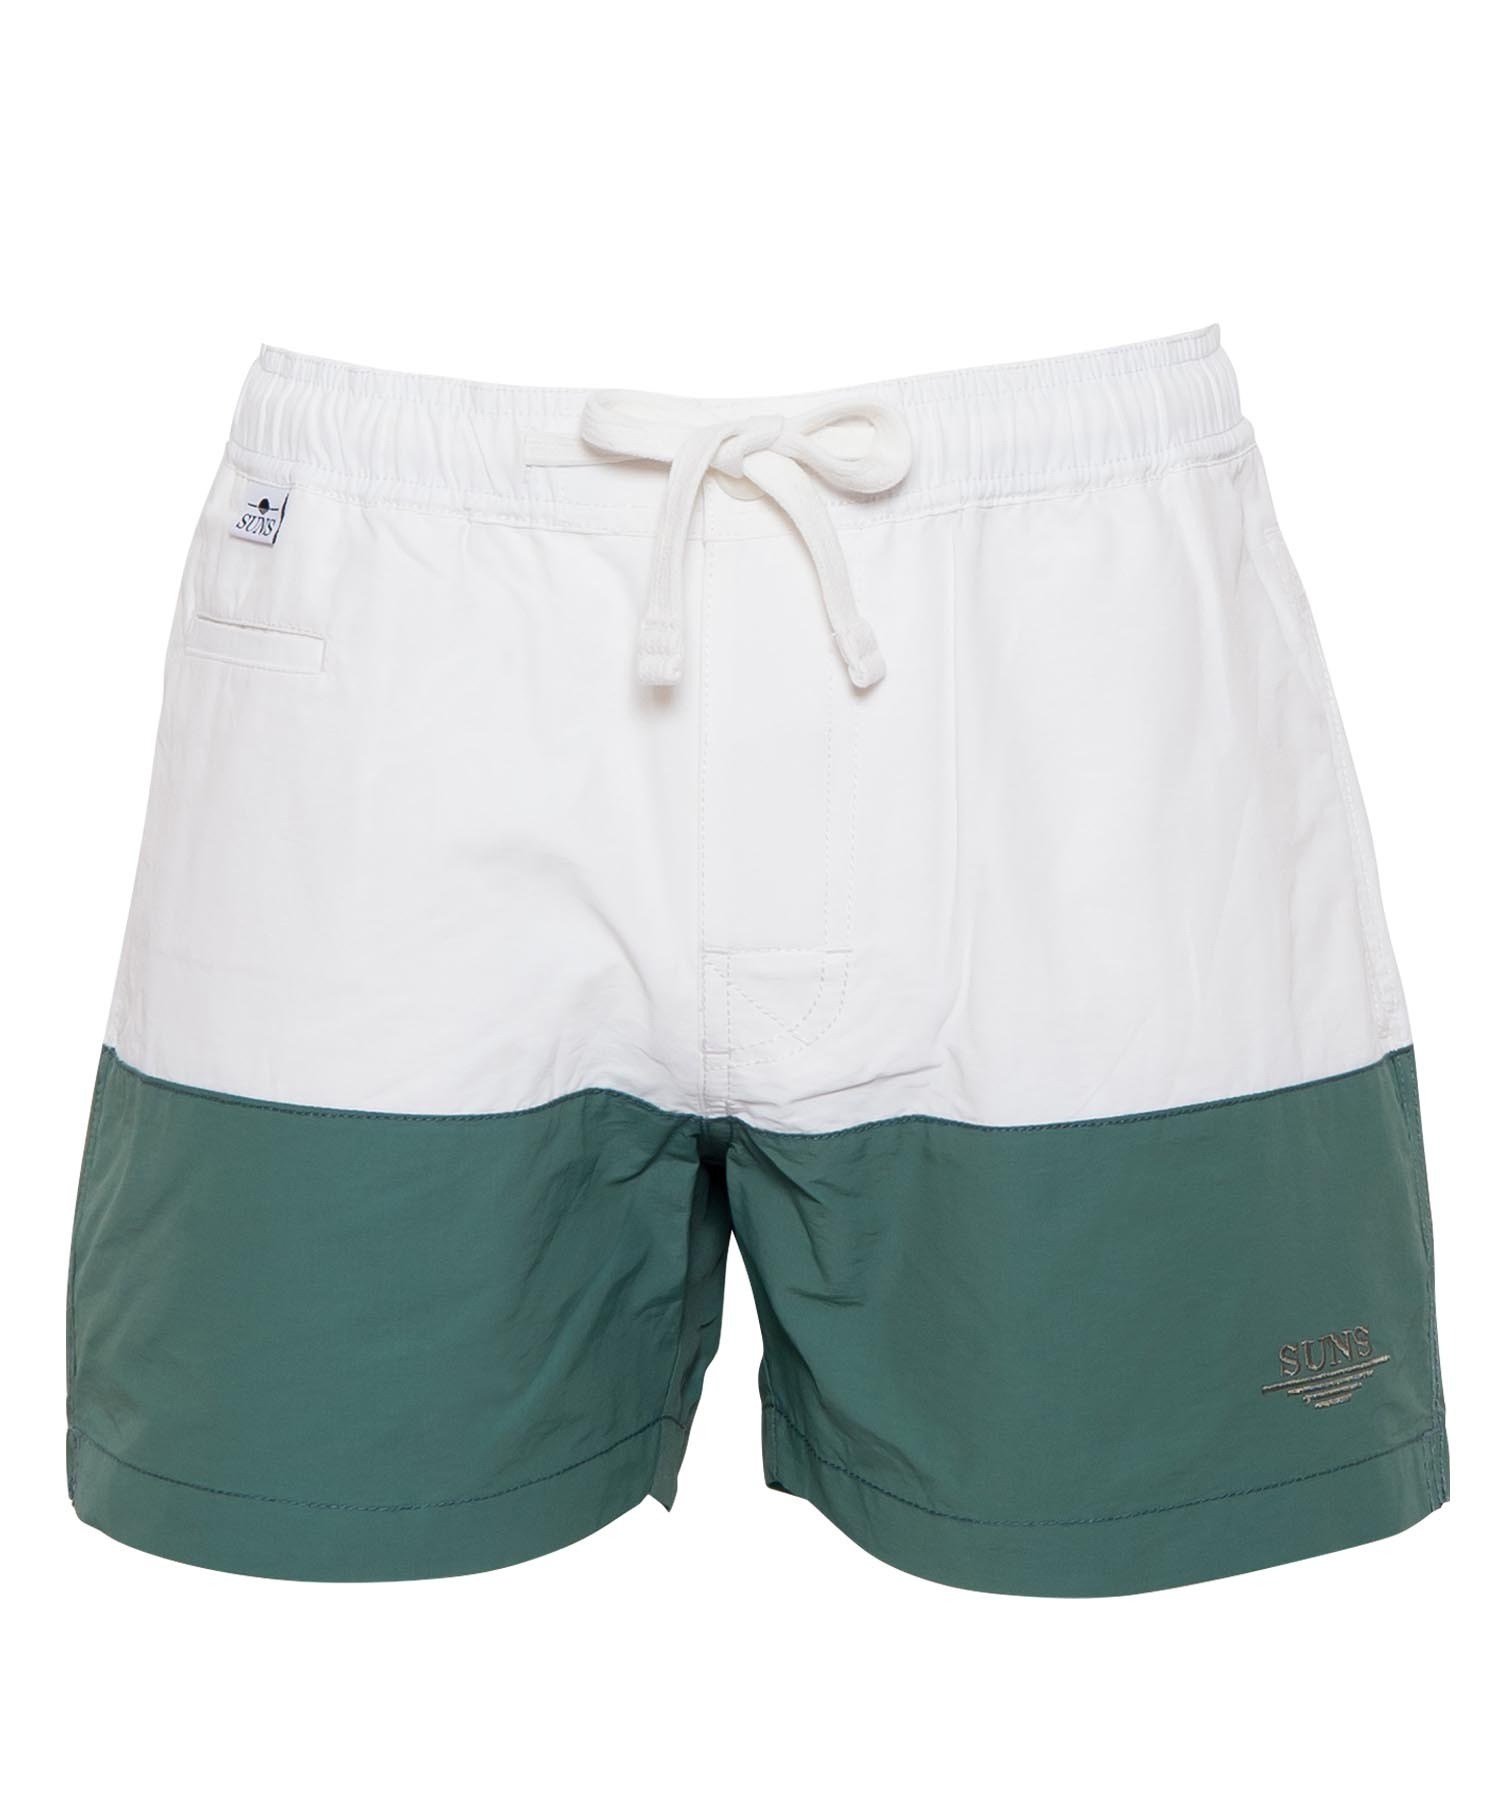 SUNS TWO-TONE COLOR SWIM SHORTS[RSW035]